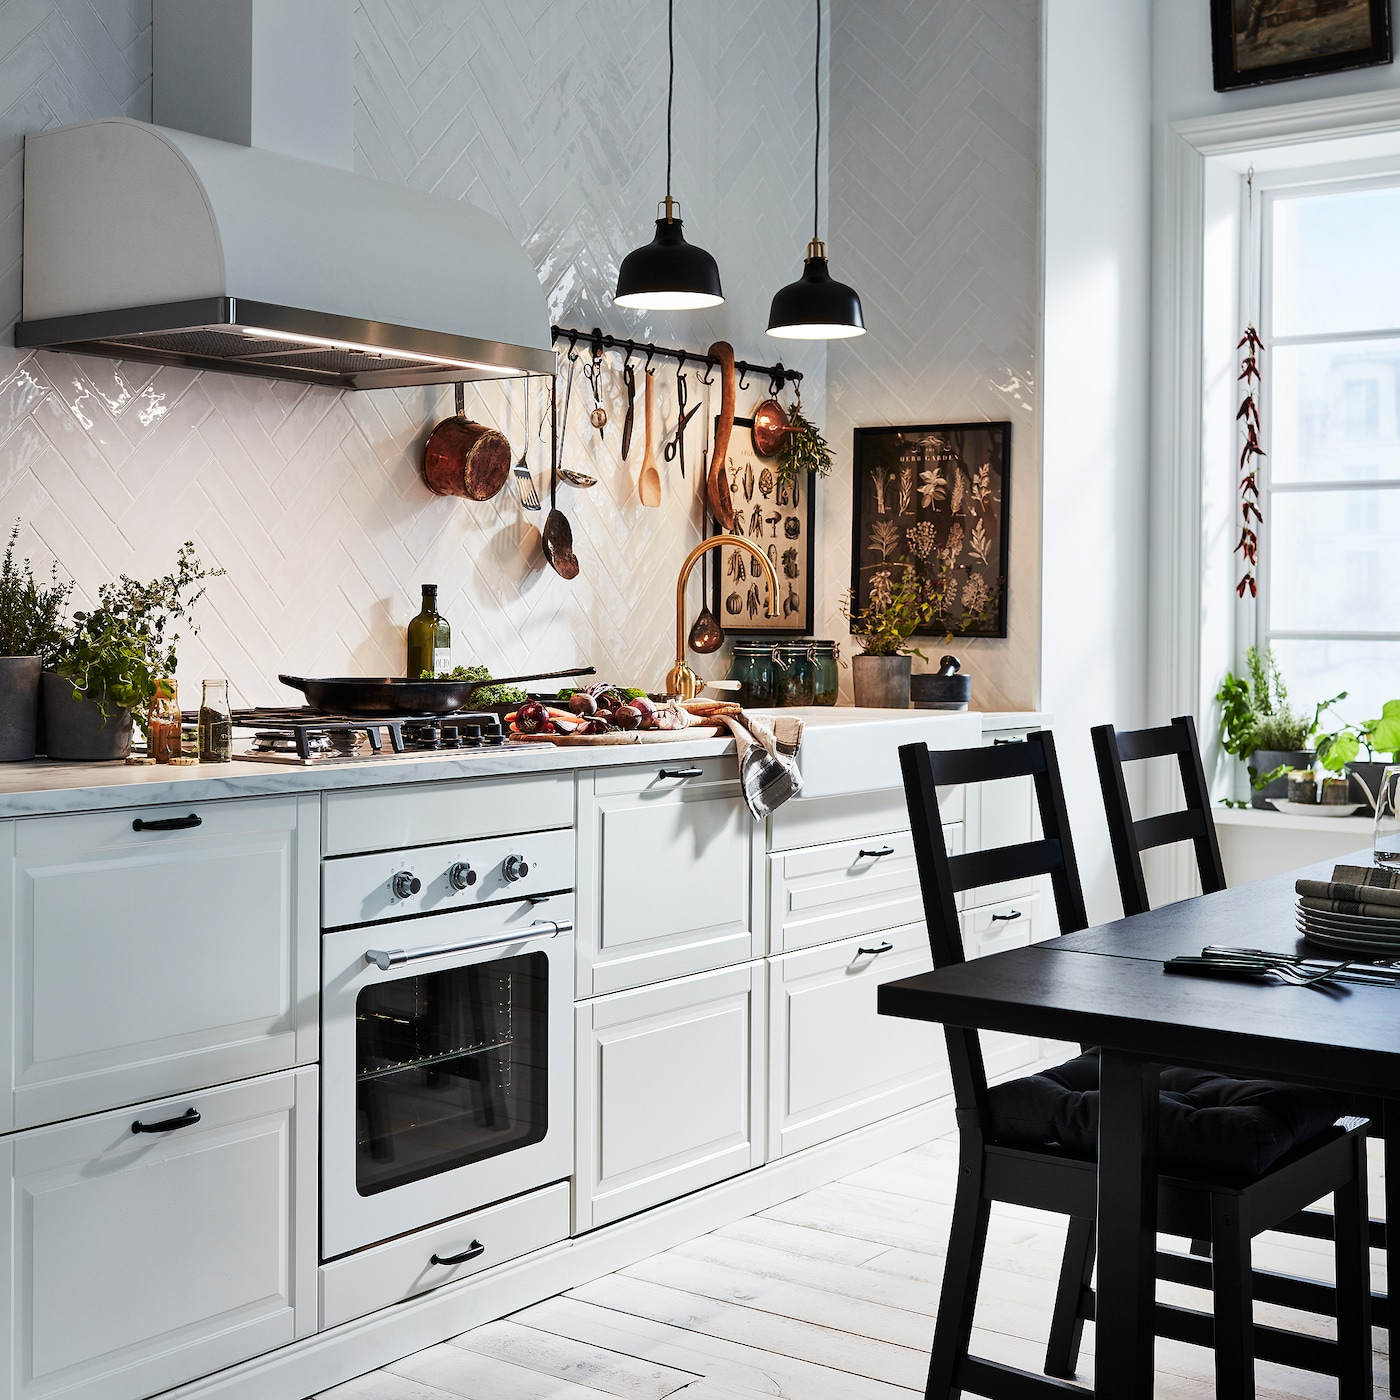 IKEA Metod Kitchen Design UAE - IKEA